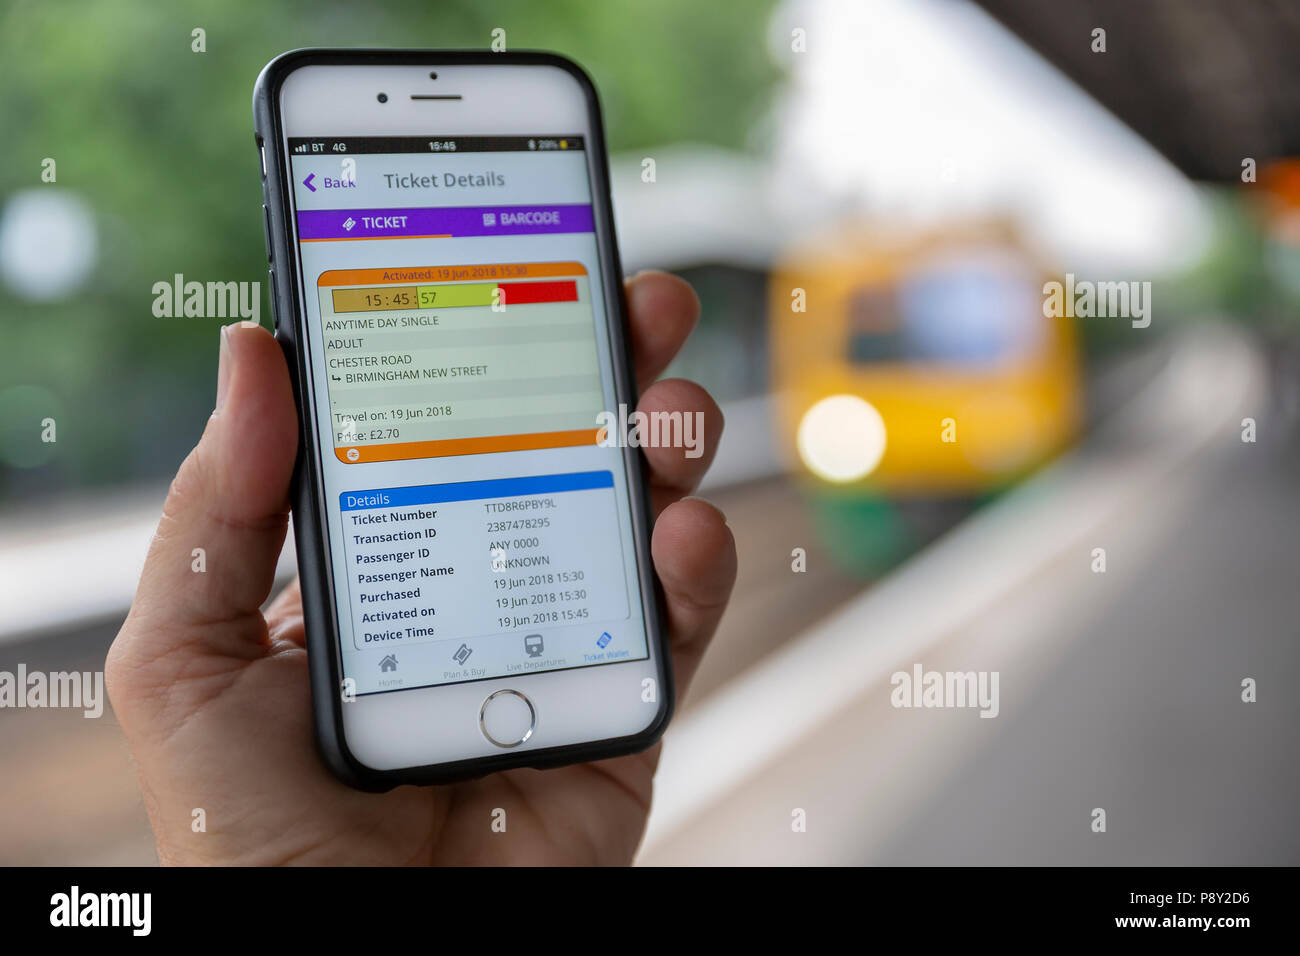 BIRMINGHAM, UK - 19 JUNE, 2018 : Close-up of an iPhone 6 displaying an electronic train ticket, with a train at the station platform behind. - Stock Image